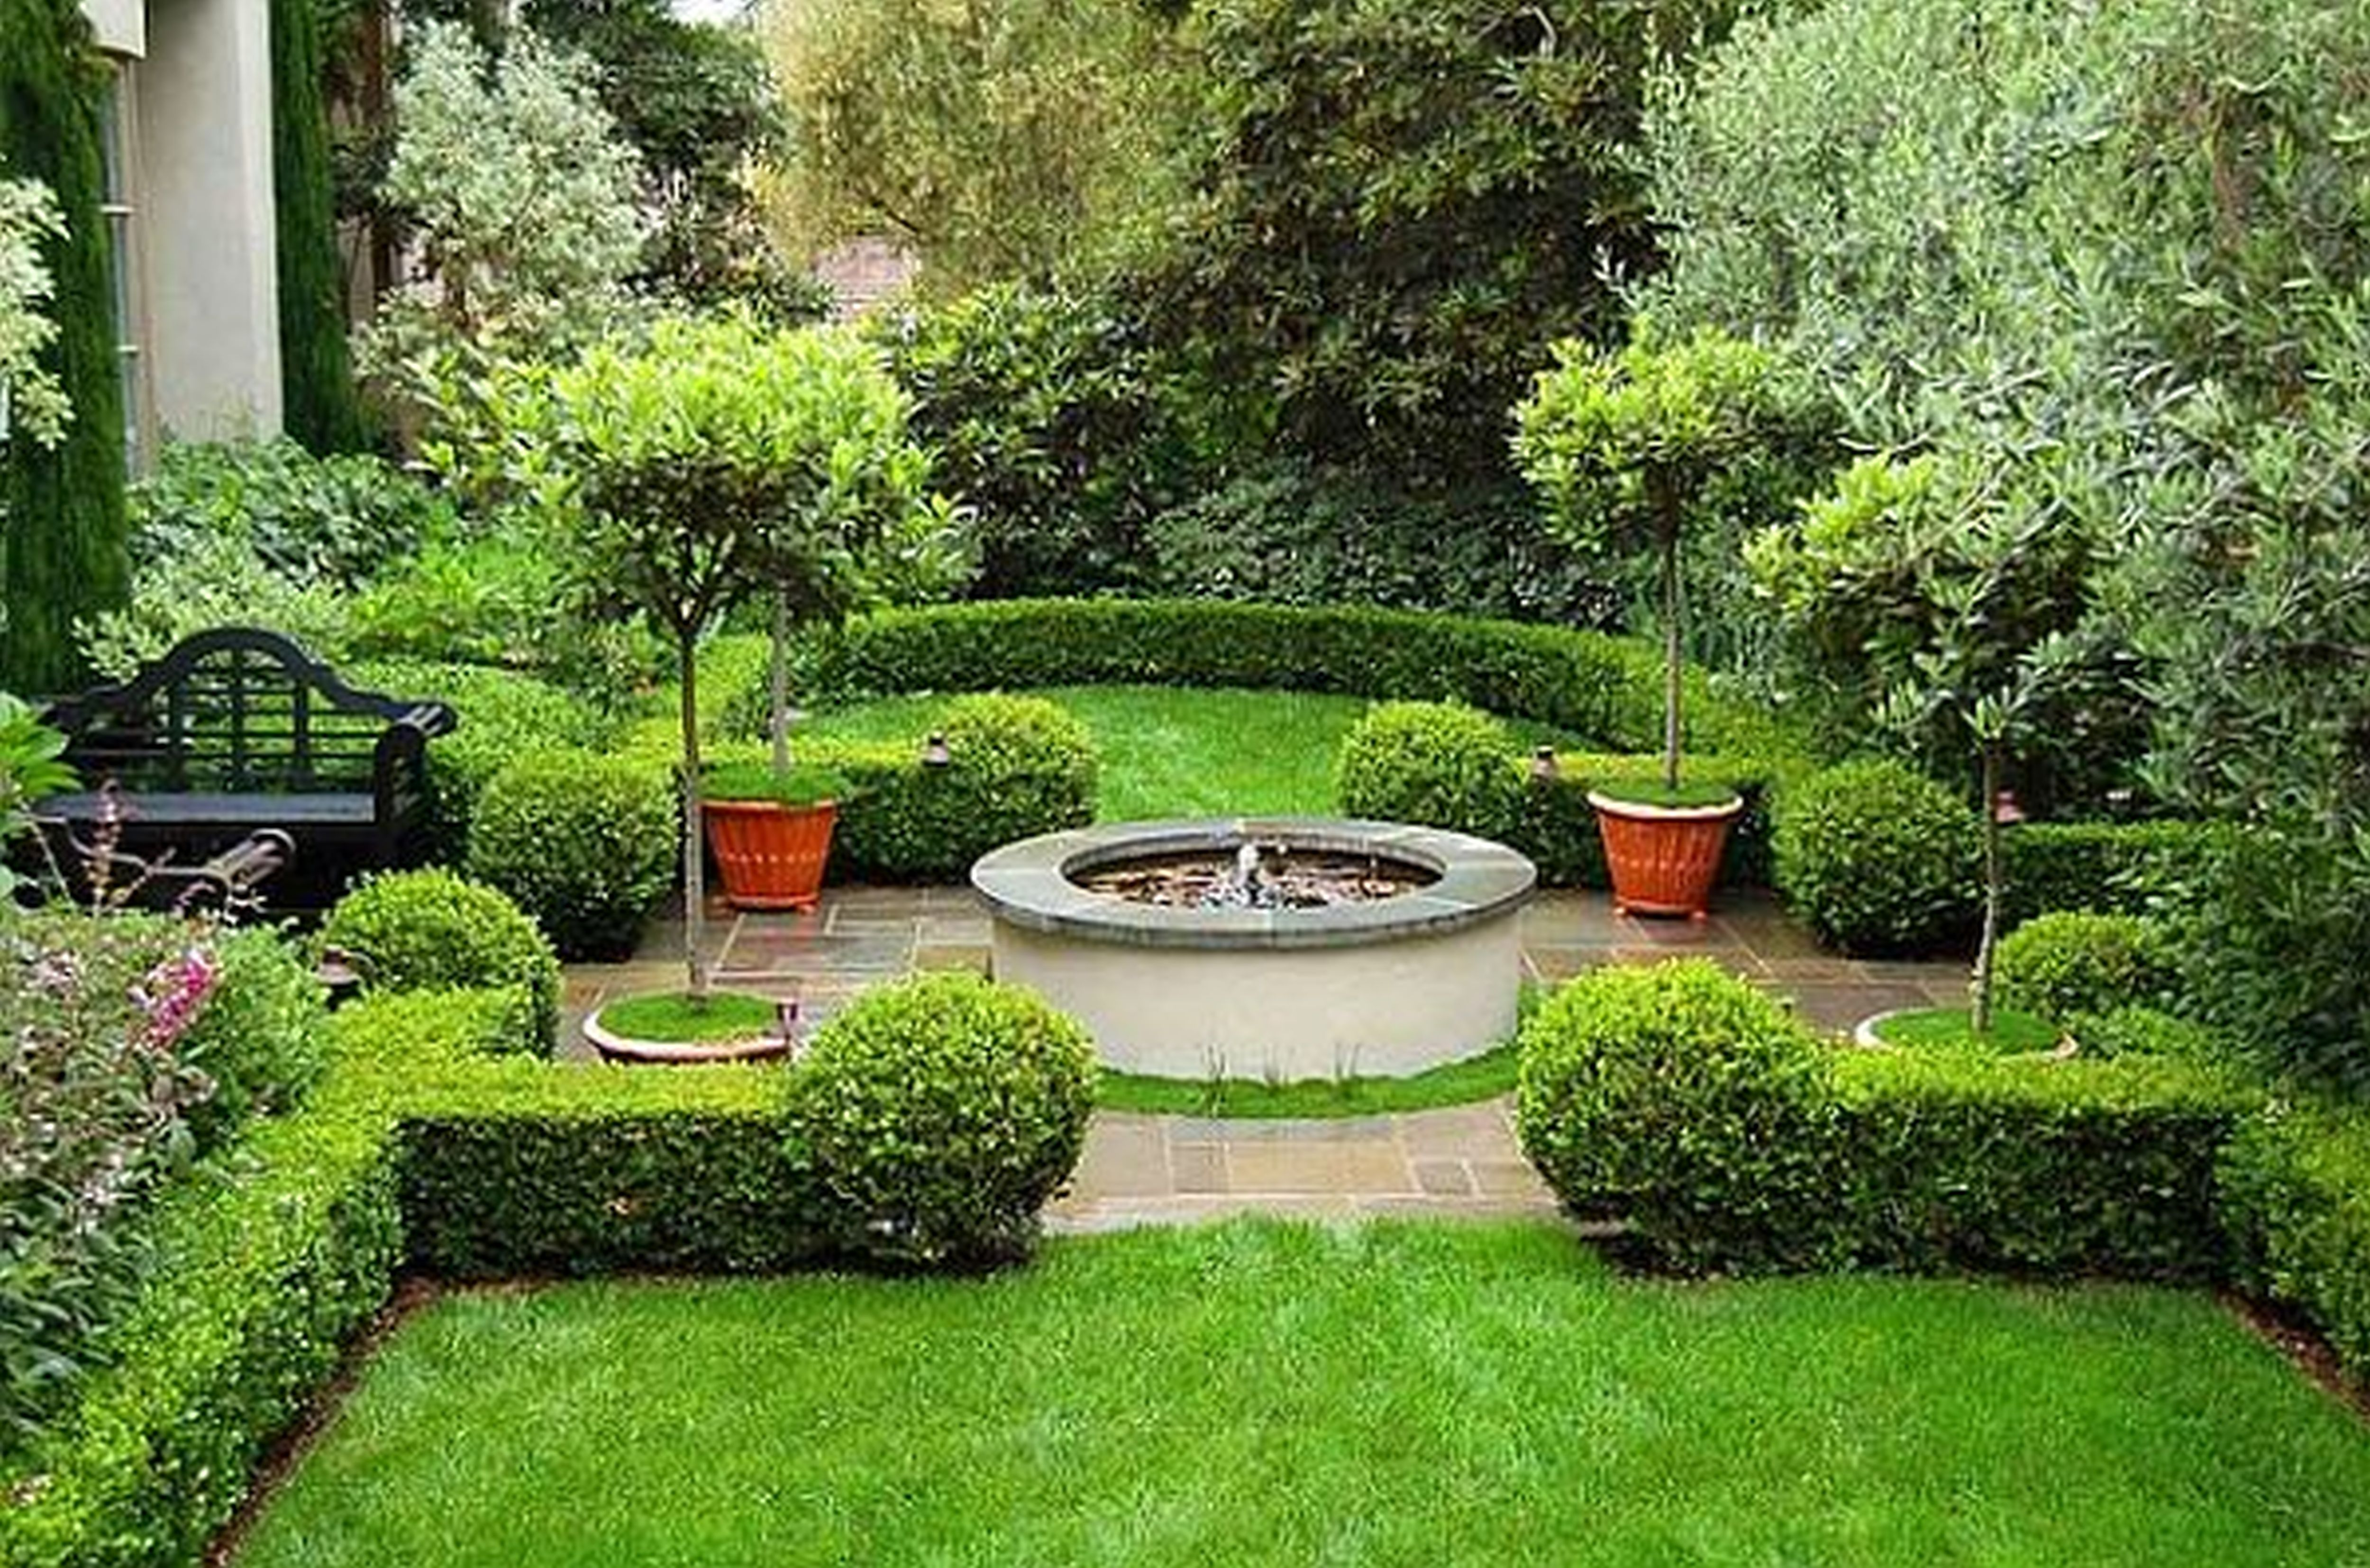 Planning landscaping organic garden landscaping for House landscaping ideas